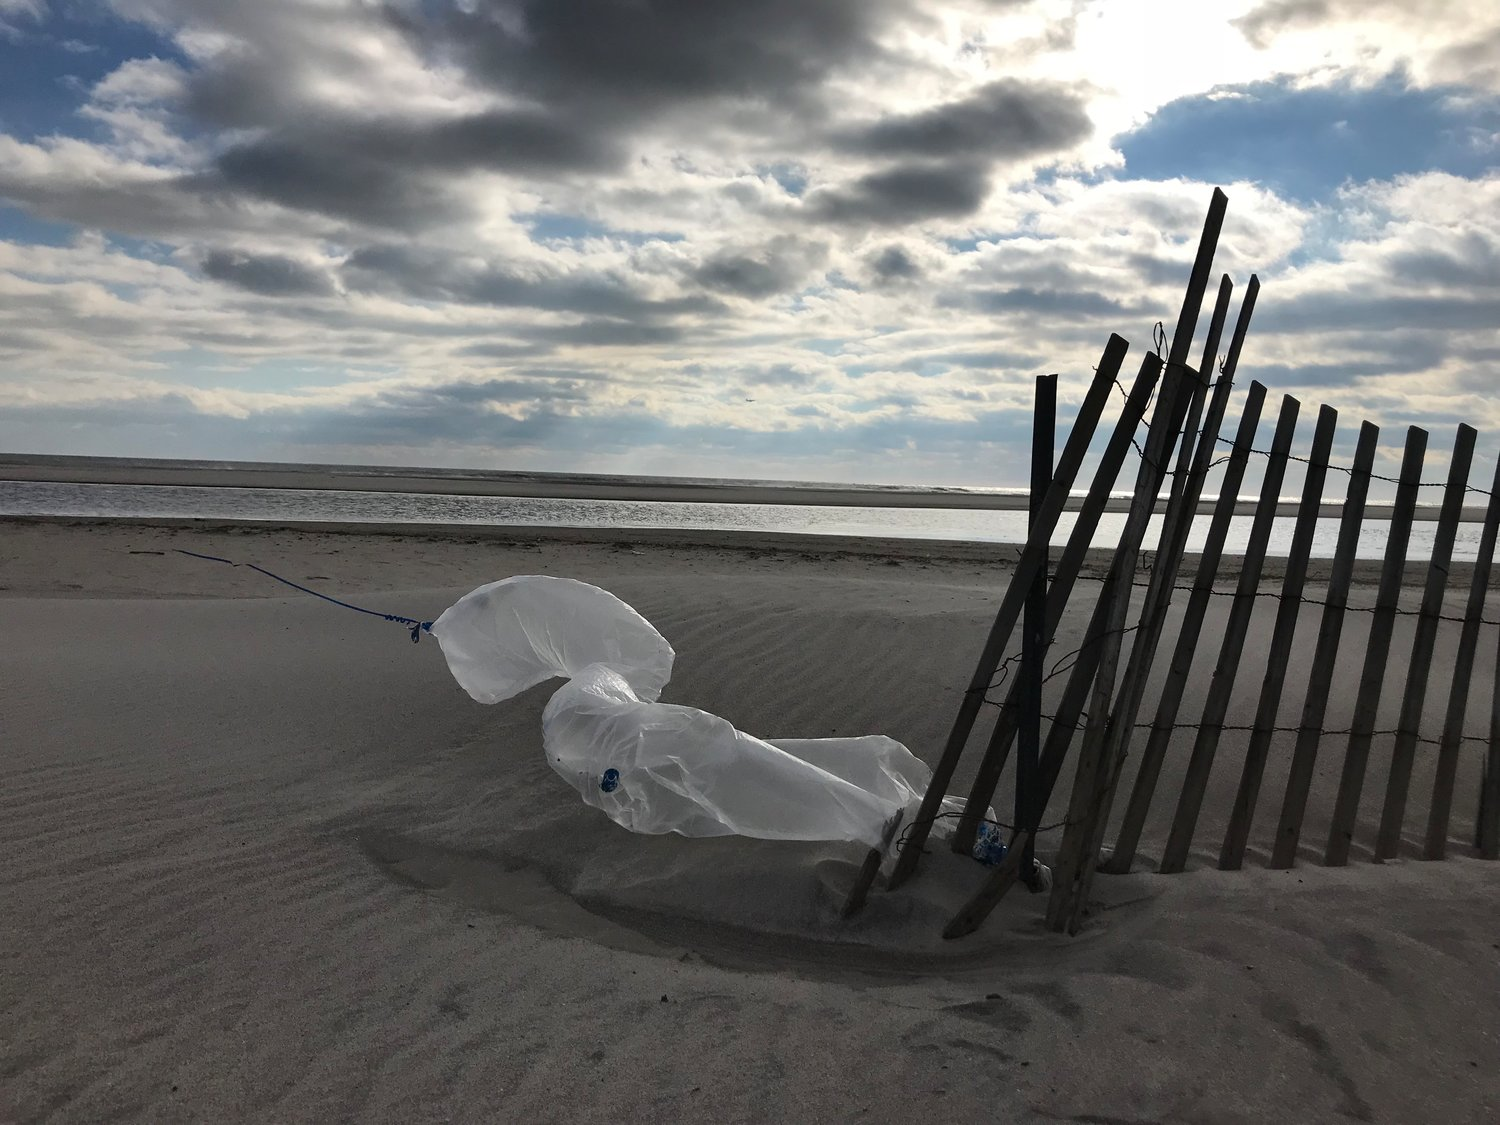 Jones Beach gets thousands of visitors during the summer, but during the winter months its practically vacant and plastic bags can be seen lingering on the sand.